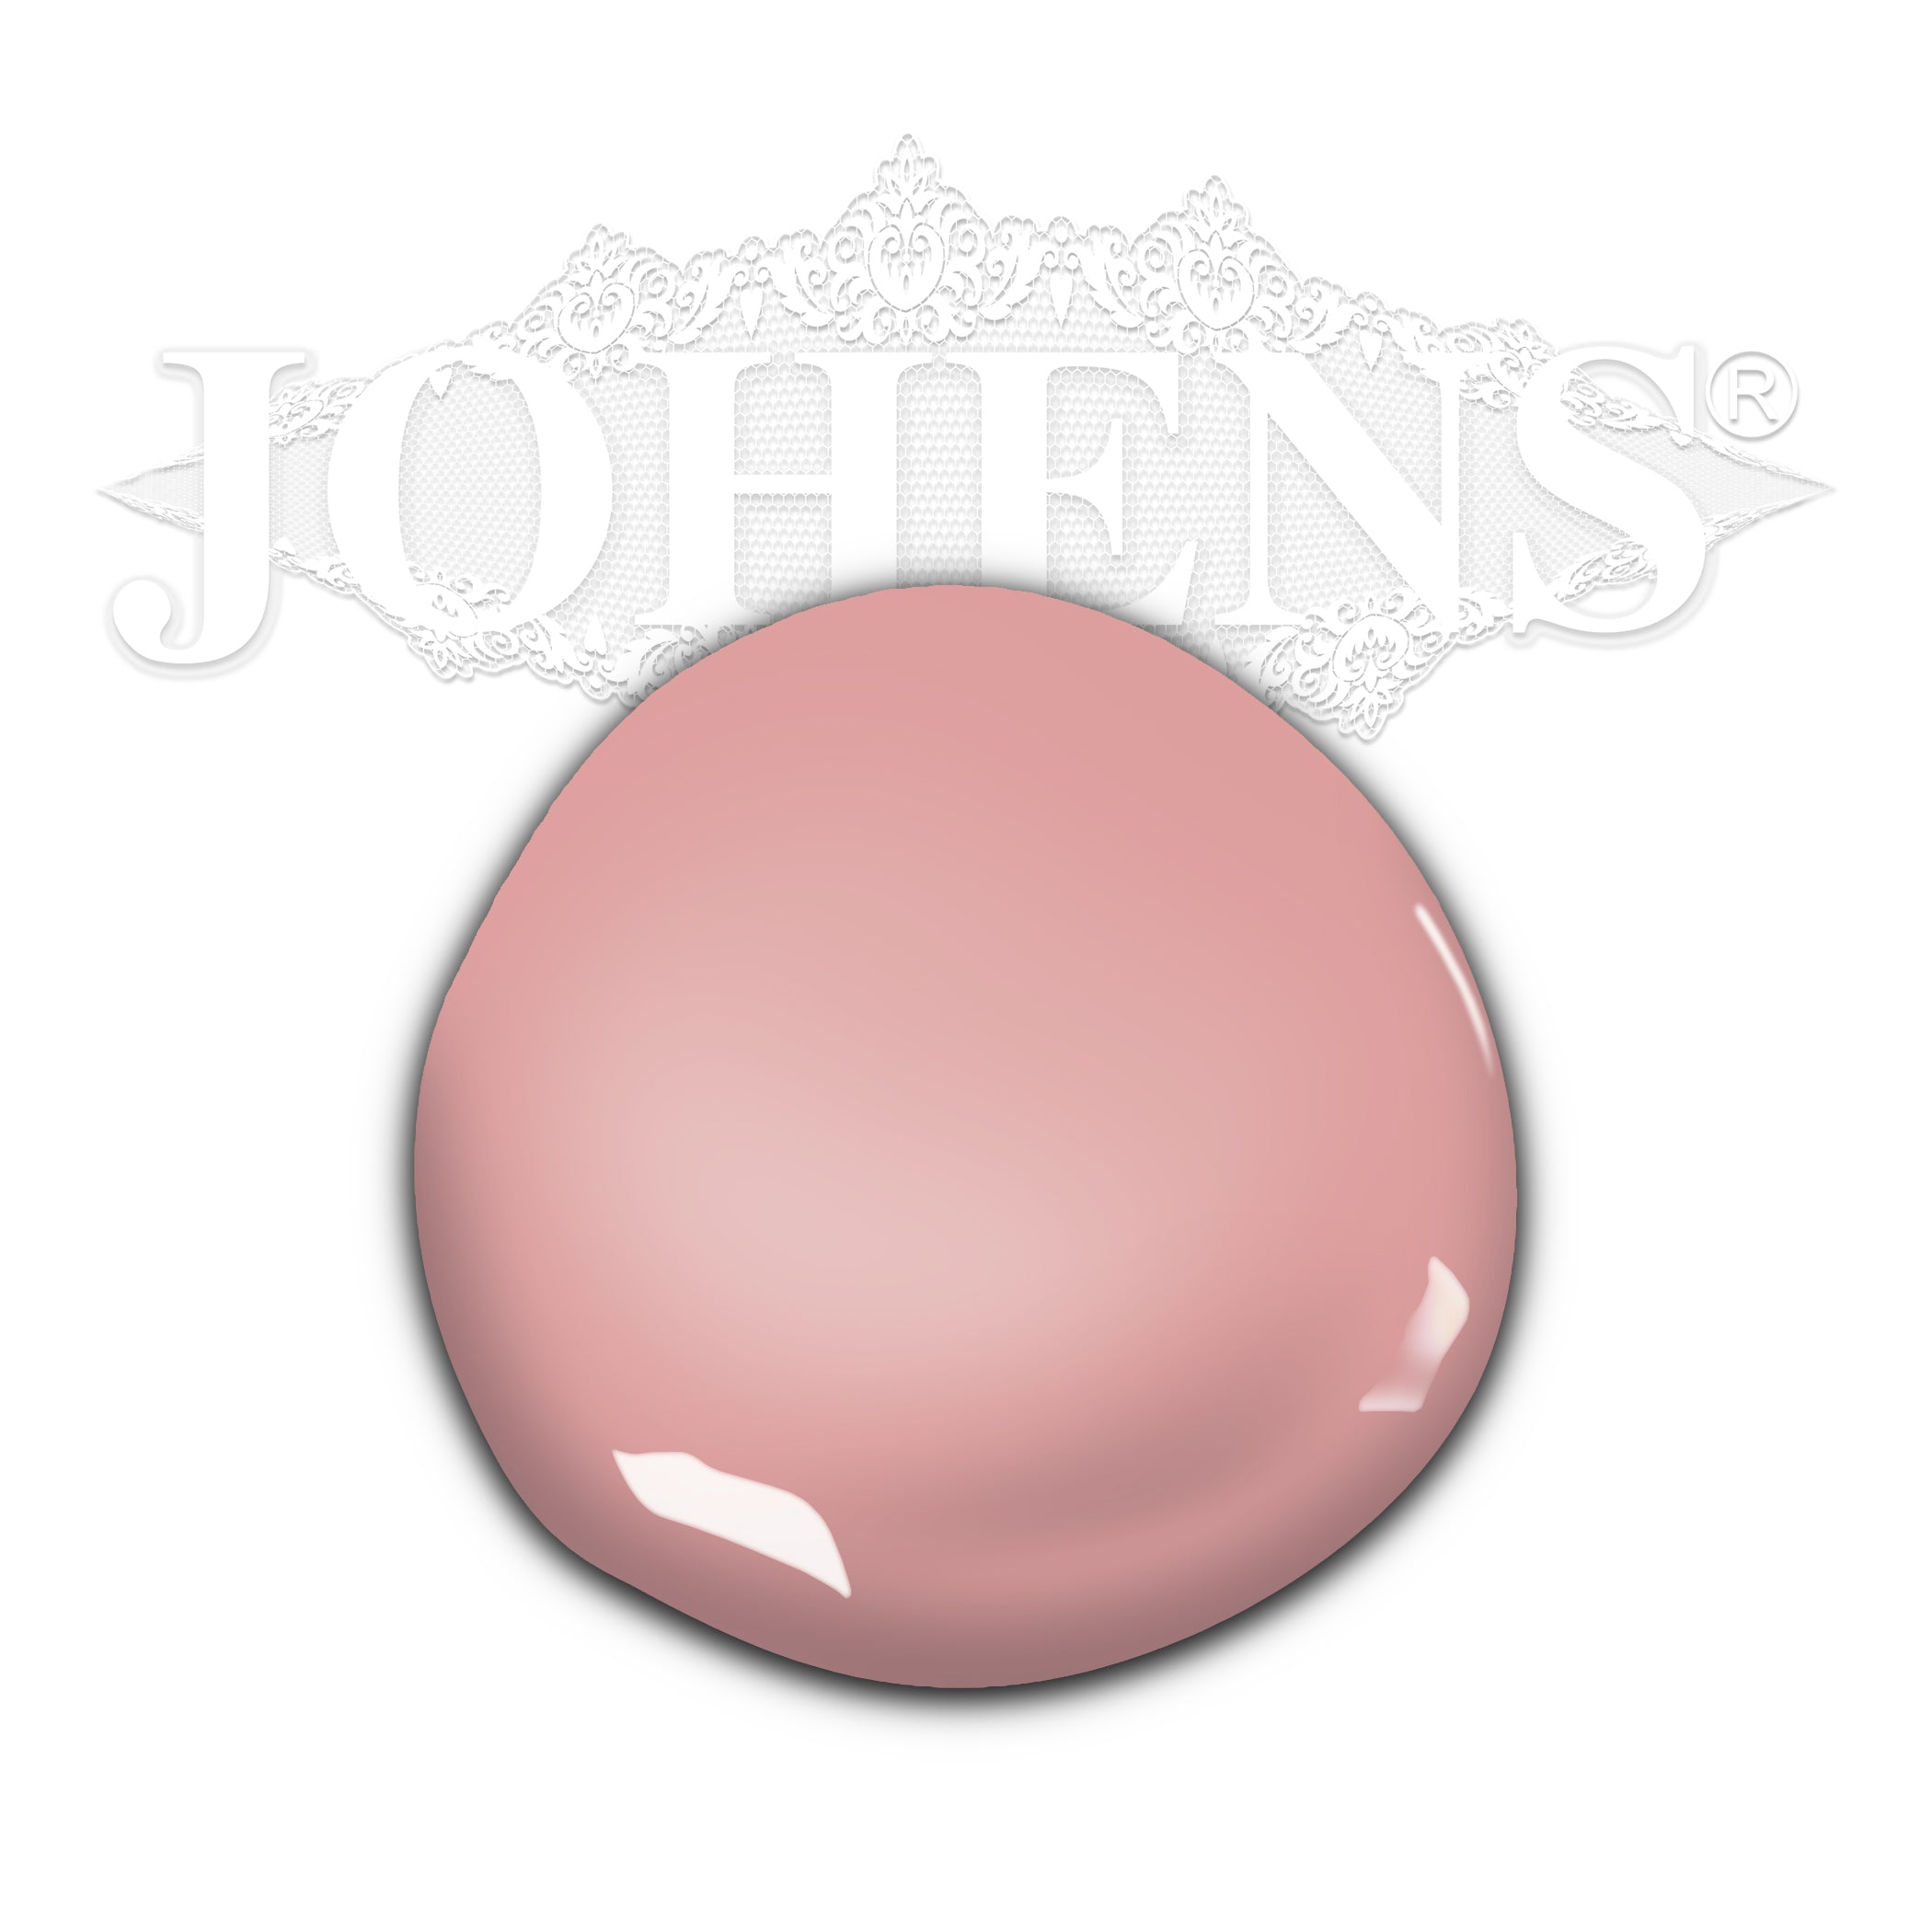 Cover Pink - Light Pink Camouflage 18g/0.63oz